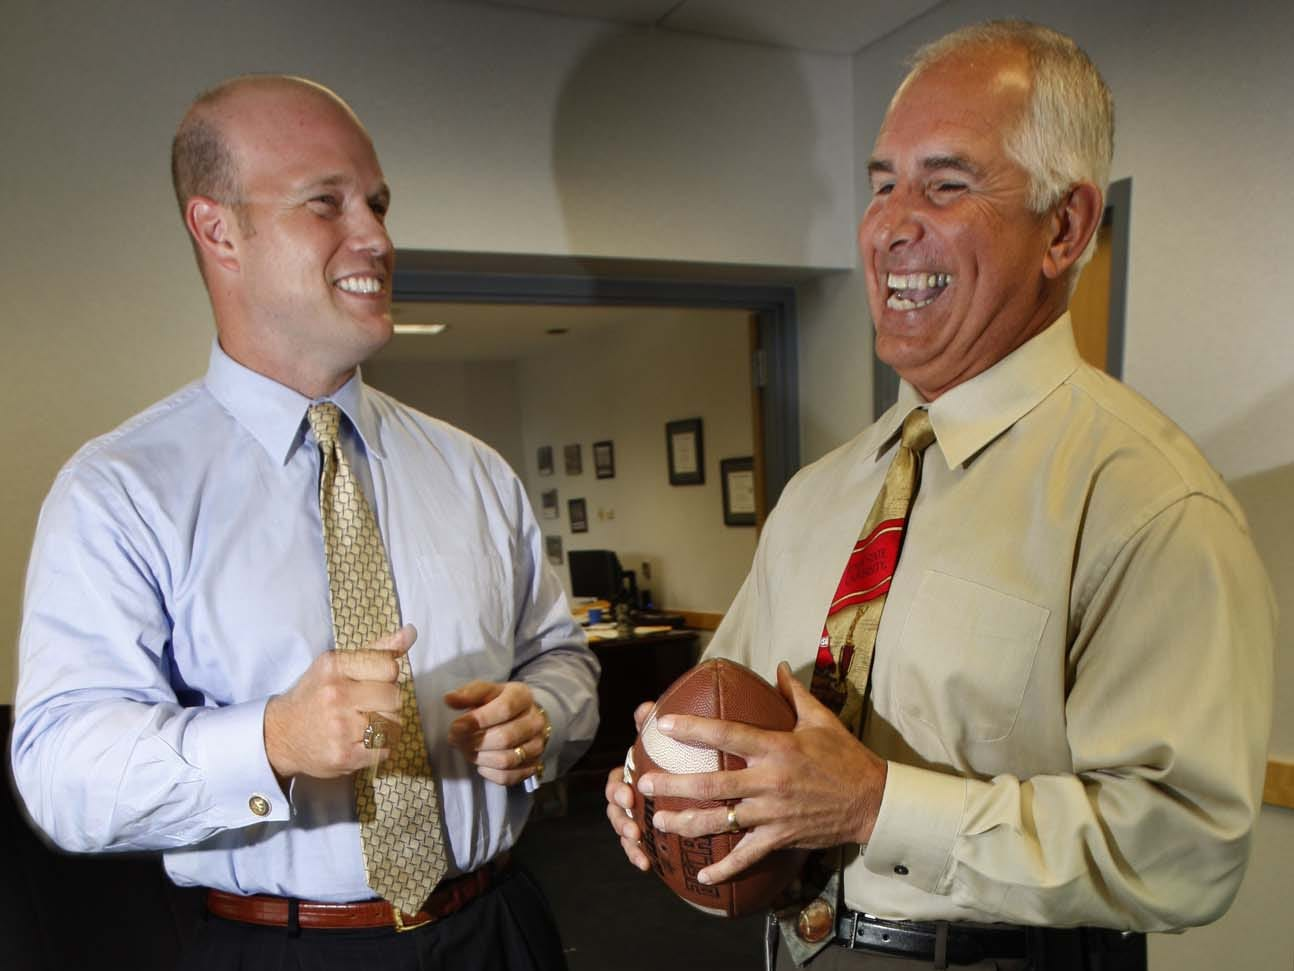 From September 2009: Former Iowa Hawkeyes tight end Matt Whitaker (left), now a U.S. Attorney for the southern district of Iowa, and former Iowa State quarterback John Quinn, now the Director of the division of criminal investigations in Iowa, pose for a photo in Whitaker's office.